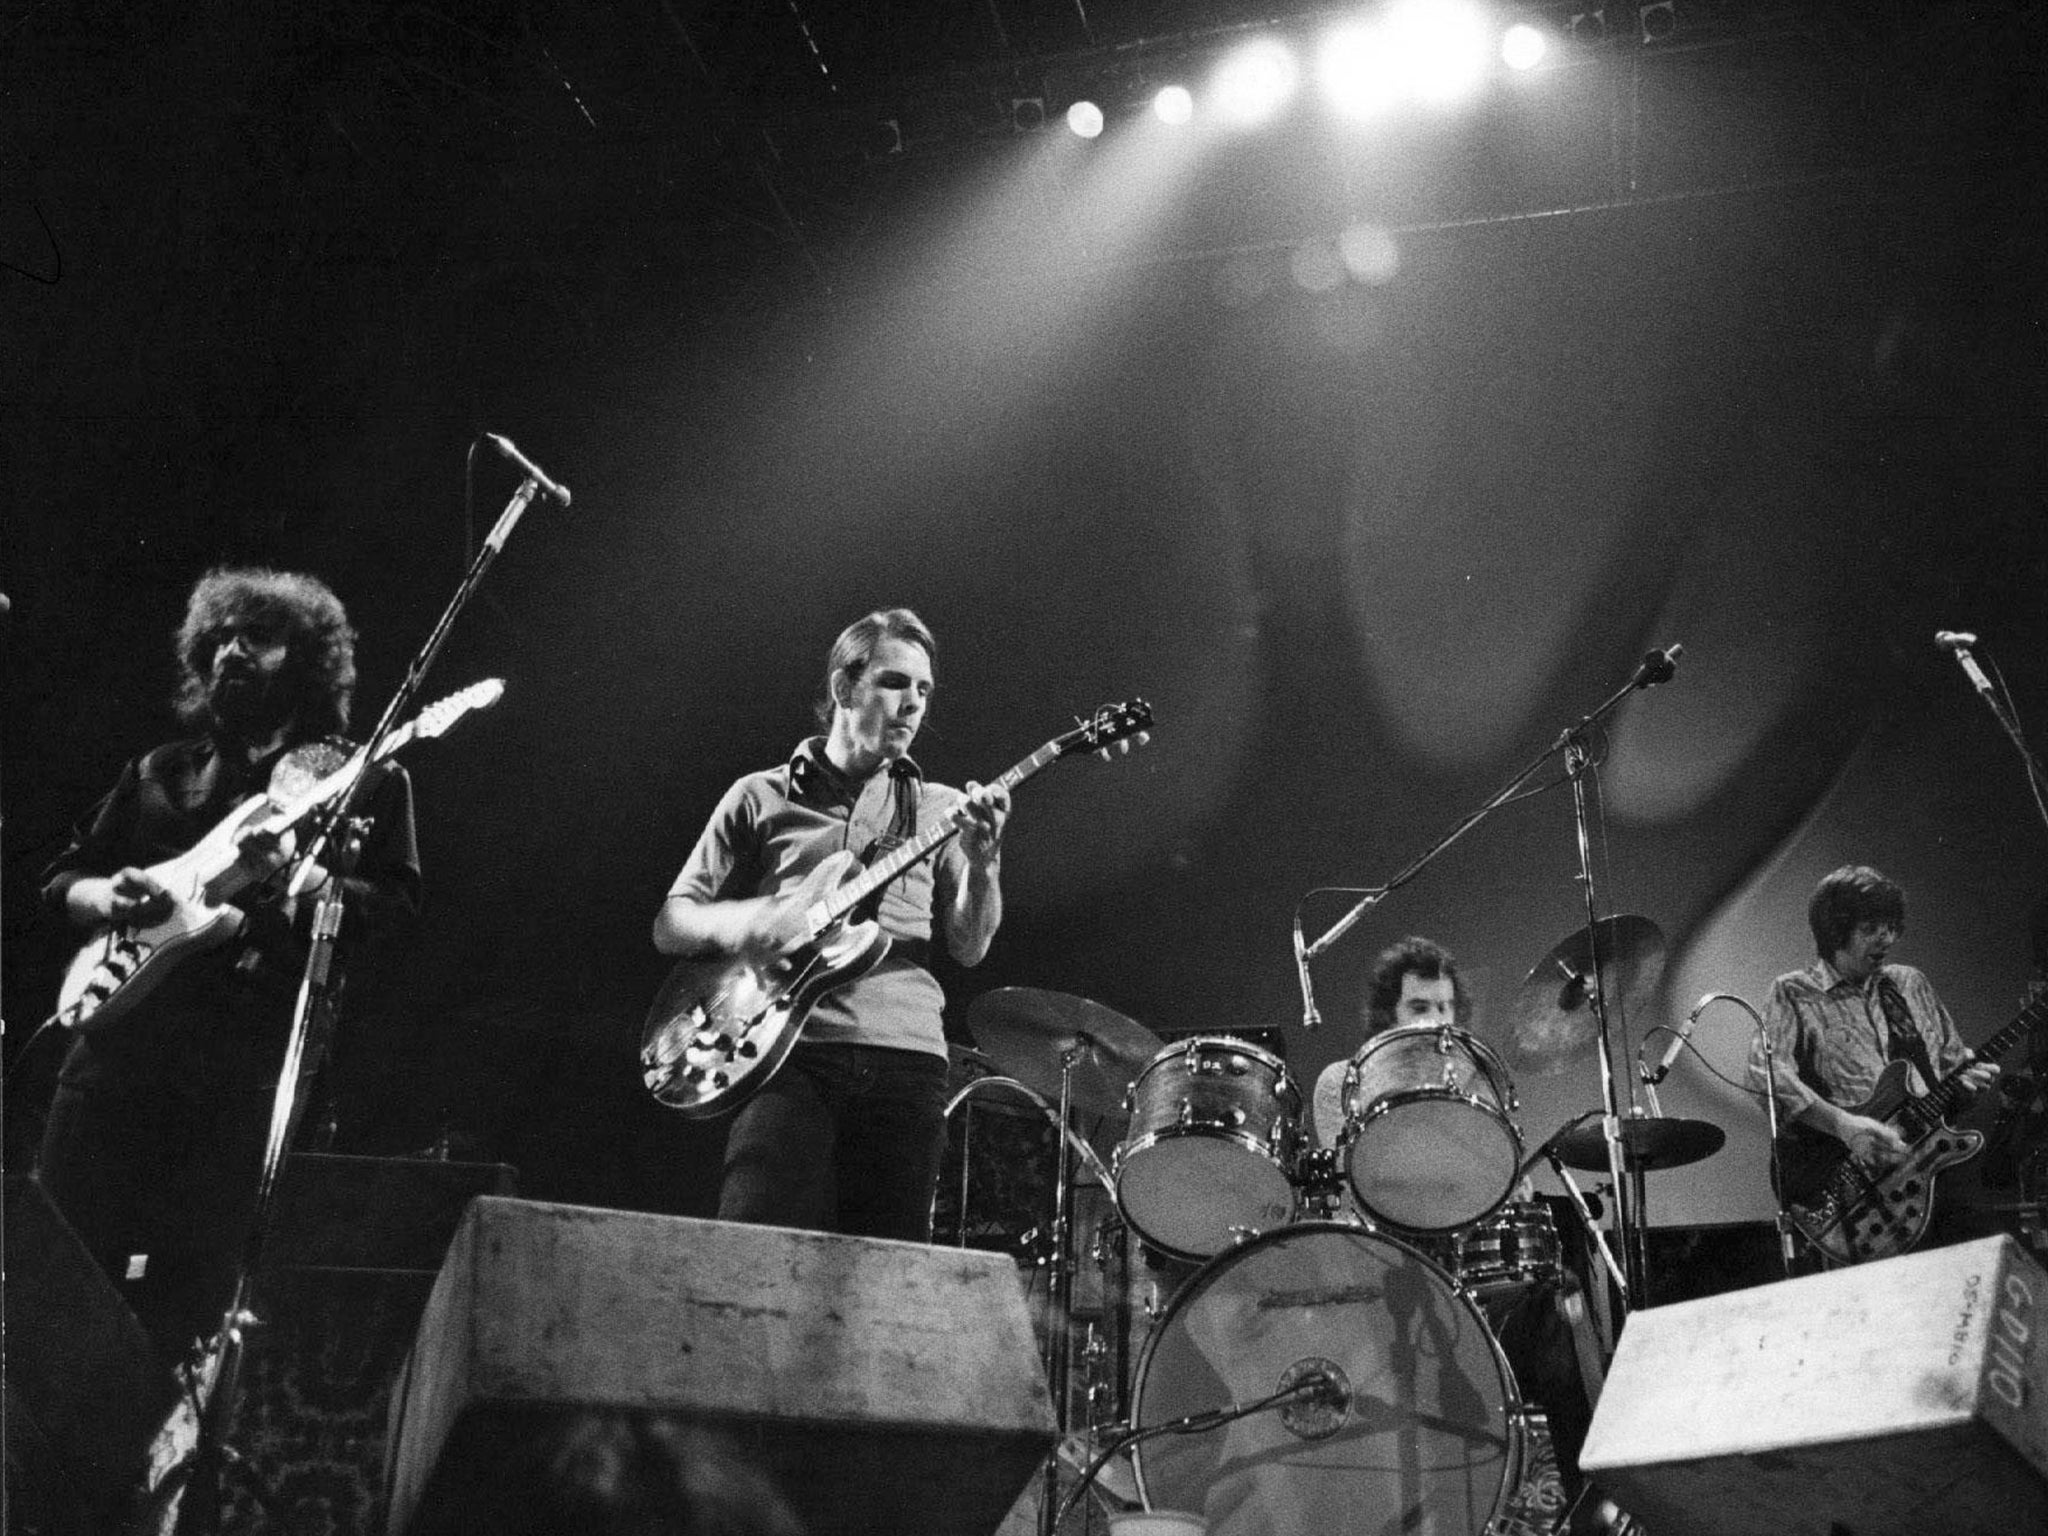 an analysis of the grateful dead psychedelic rock band Dead: the evolution of the psychedelic avant-garde  sharing your insights and  being passionate about all kinds of music, especially rock 'n 'roll  examination  of the grateful dead phenomenon can contribute to the discussion of modernism .